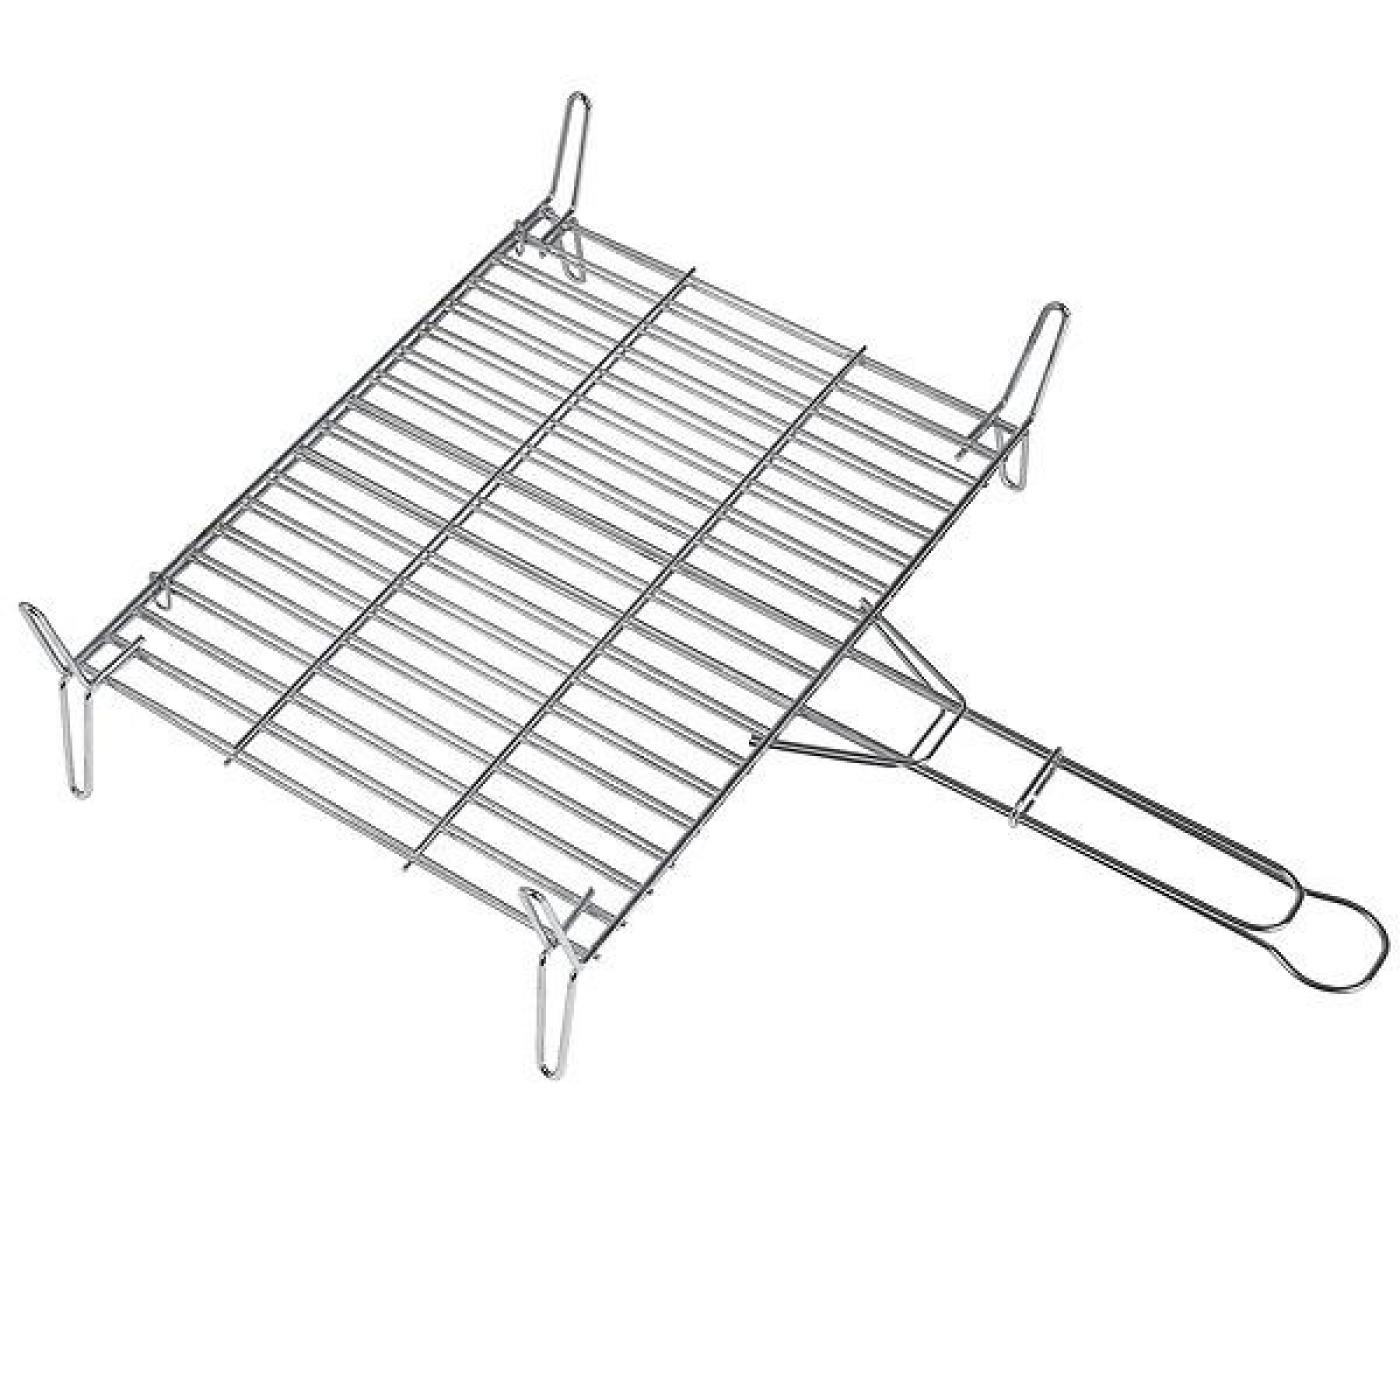 Algon double grill 40 x 40cm for on planeta huerto - Grille barbecue 70 x 40 ...